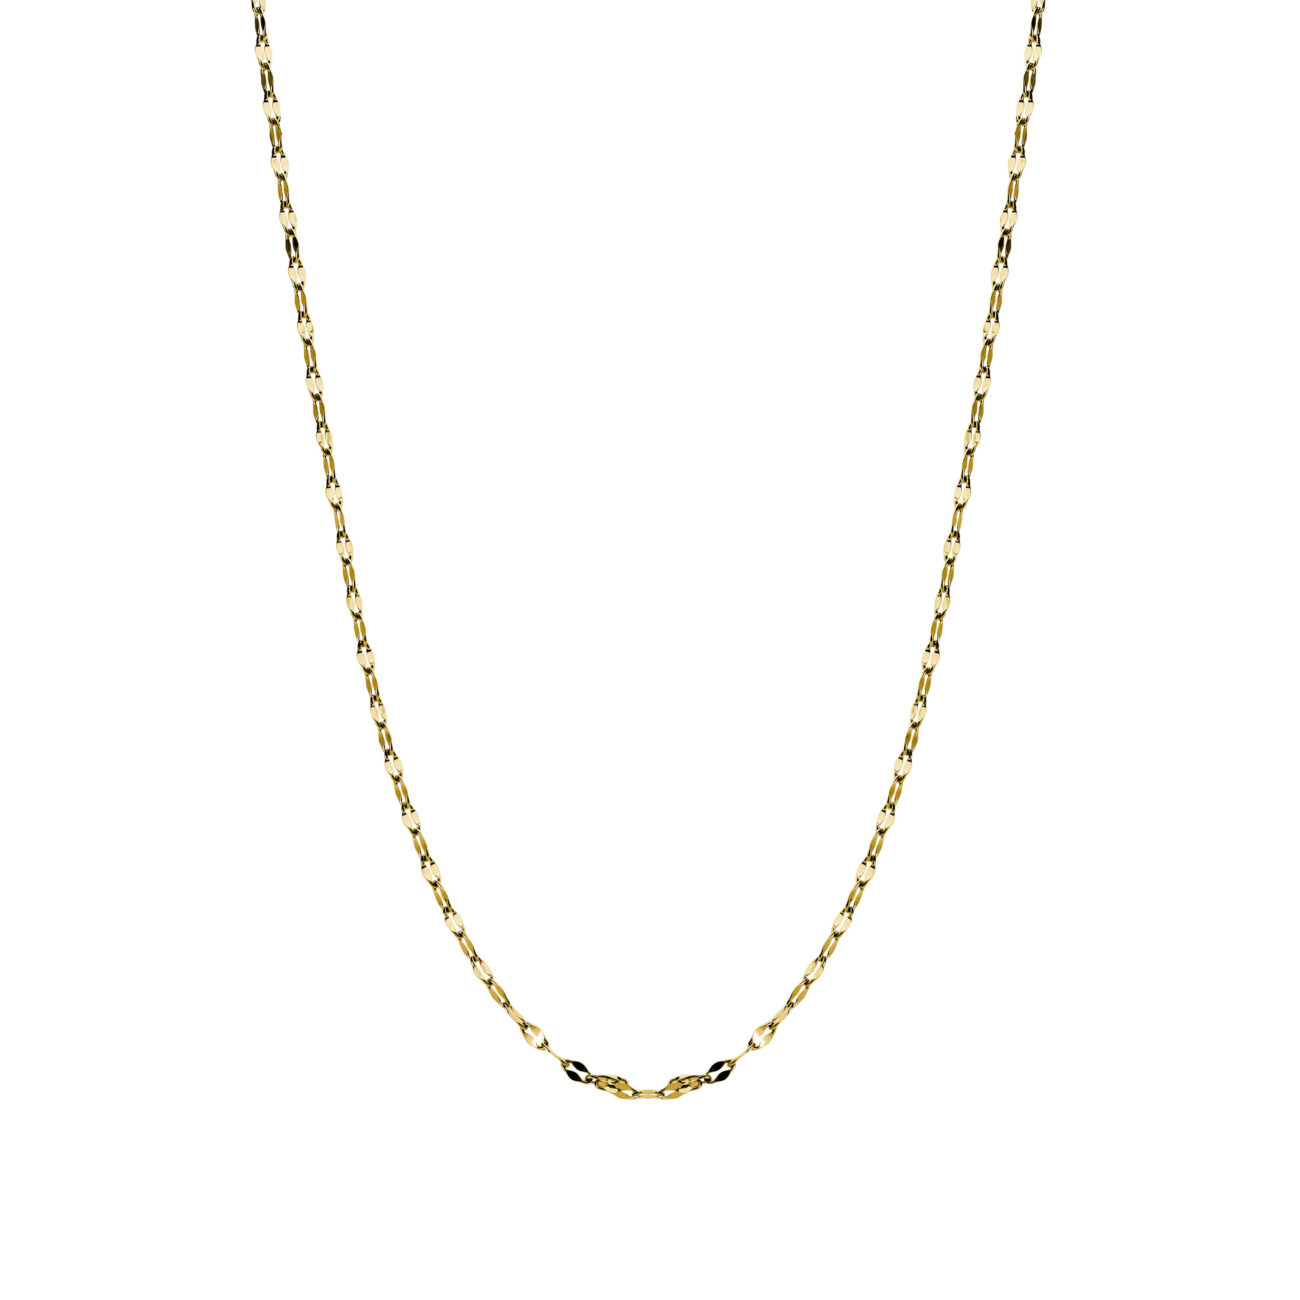 316L stainless steel necklace and gold pvd